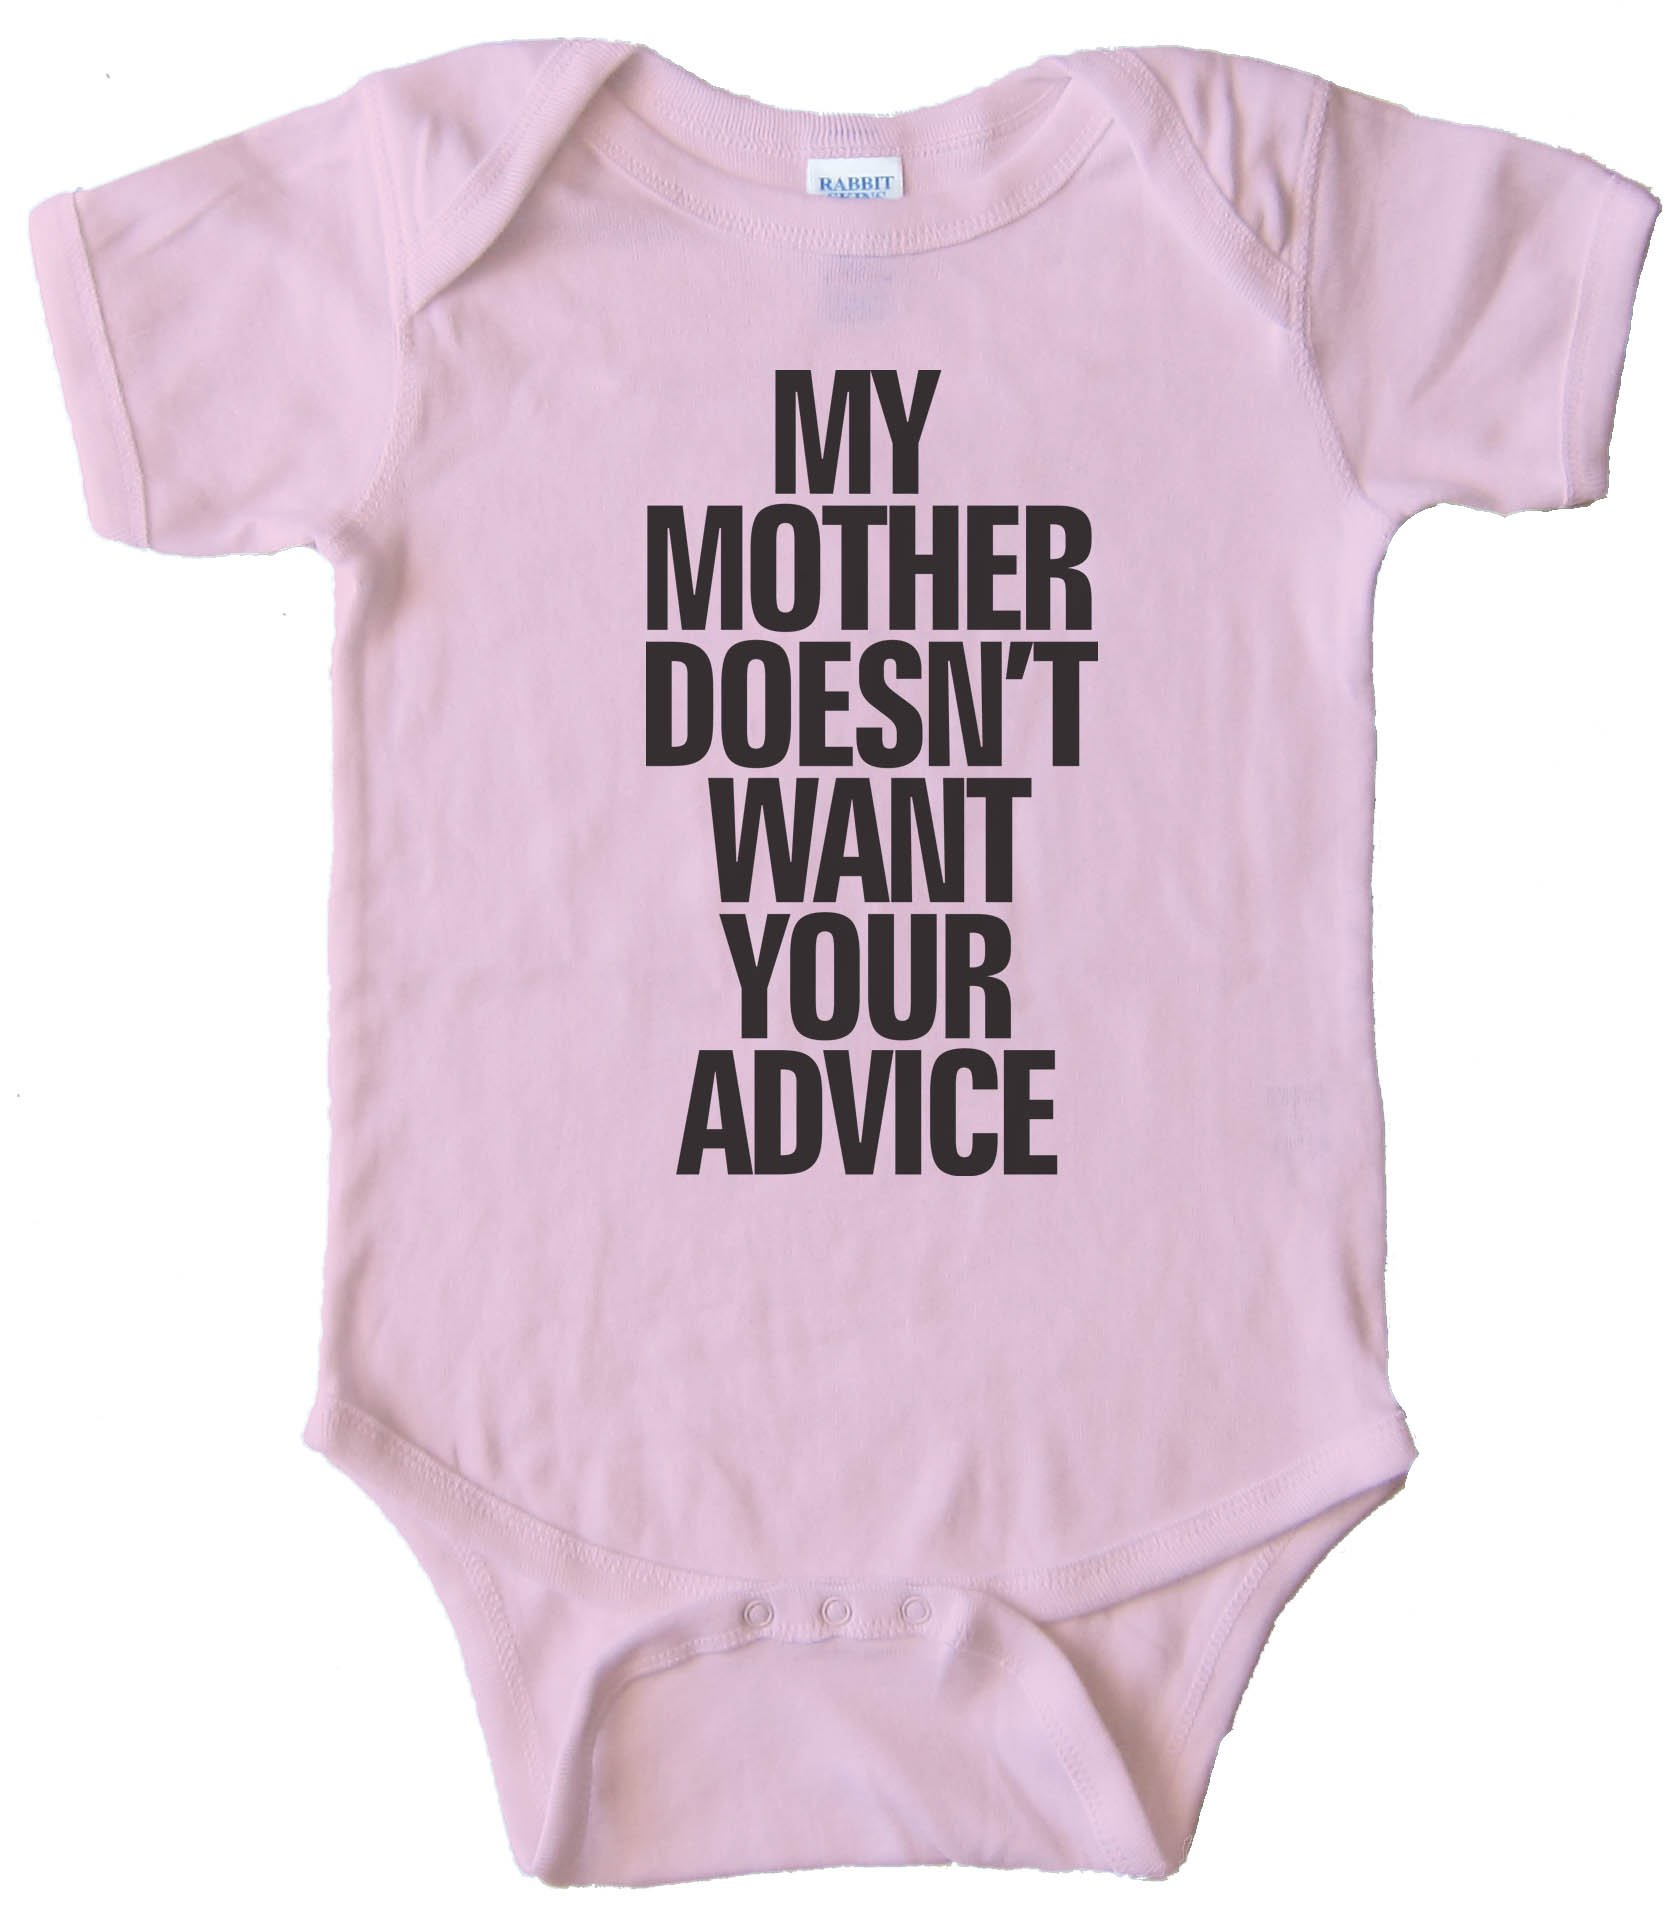 My Mother Doesn'T Want Your Advice - Baby Bodysuit